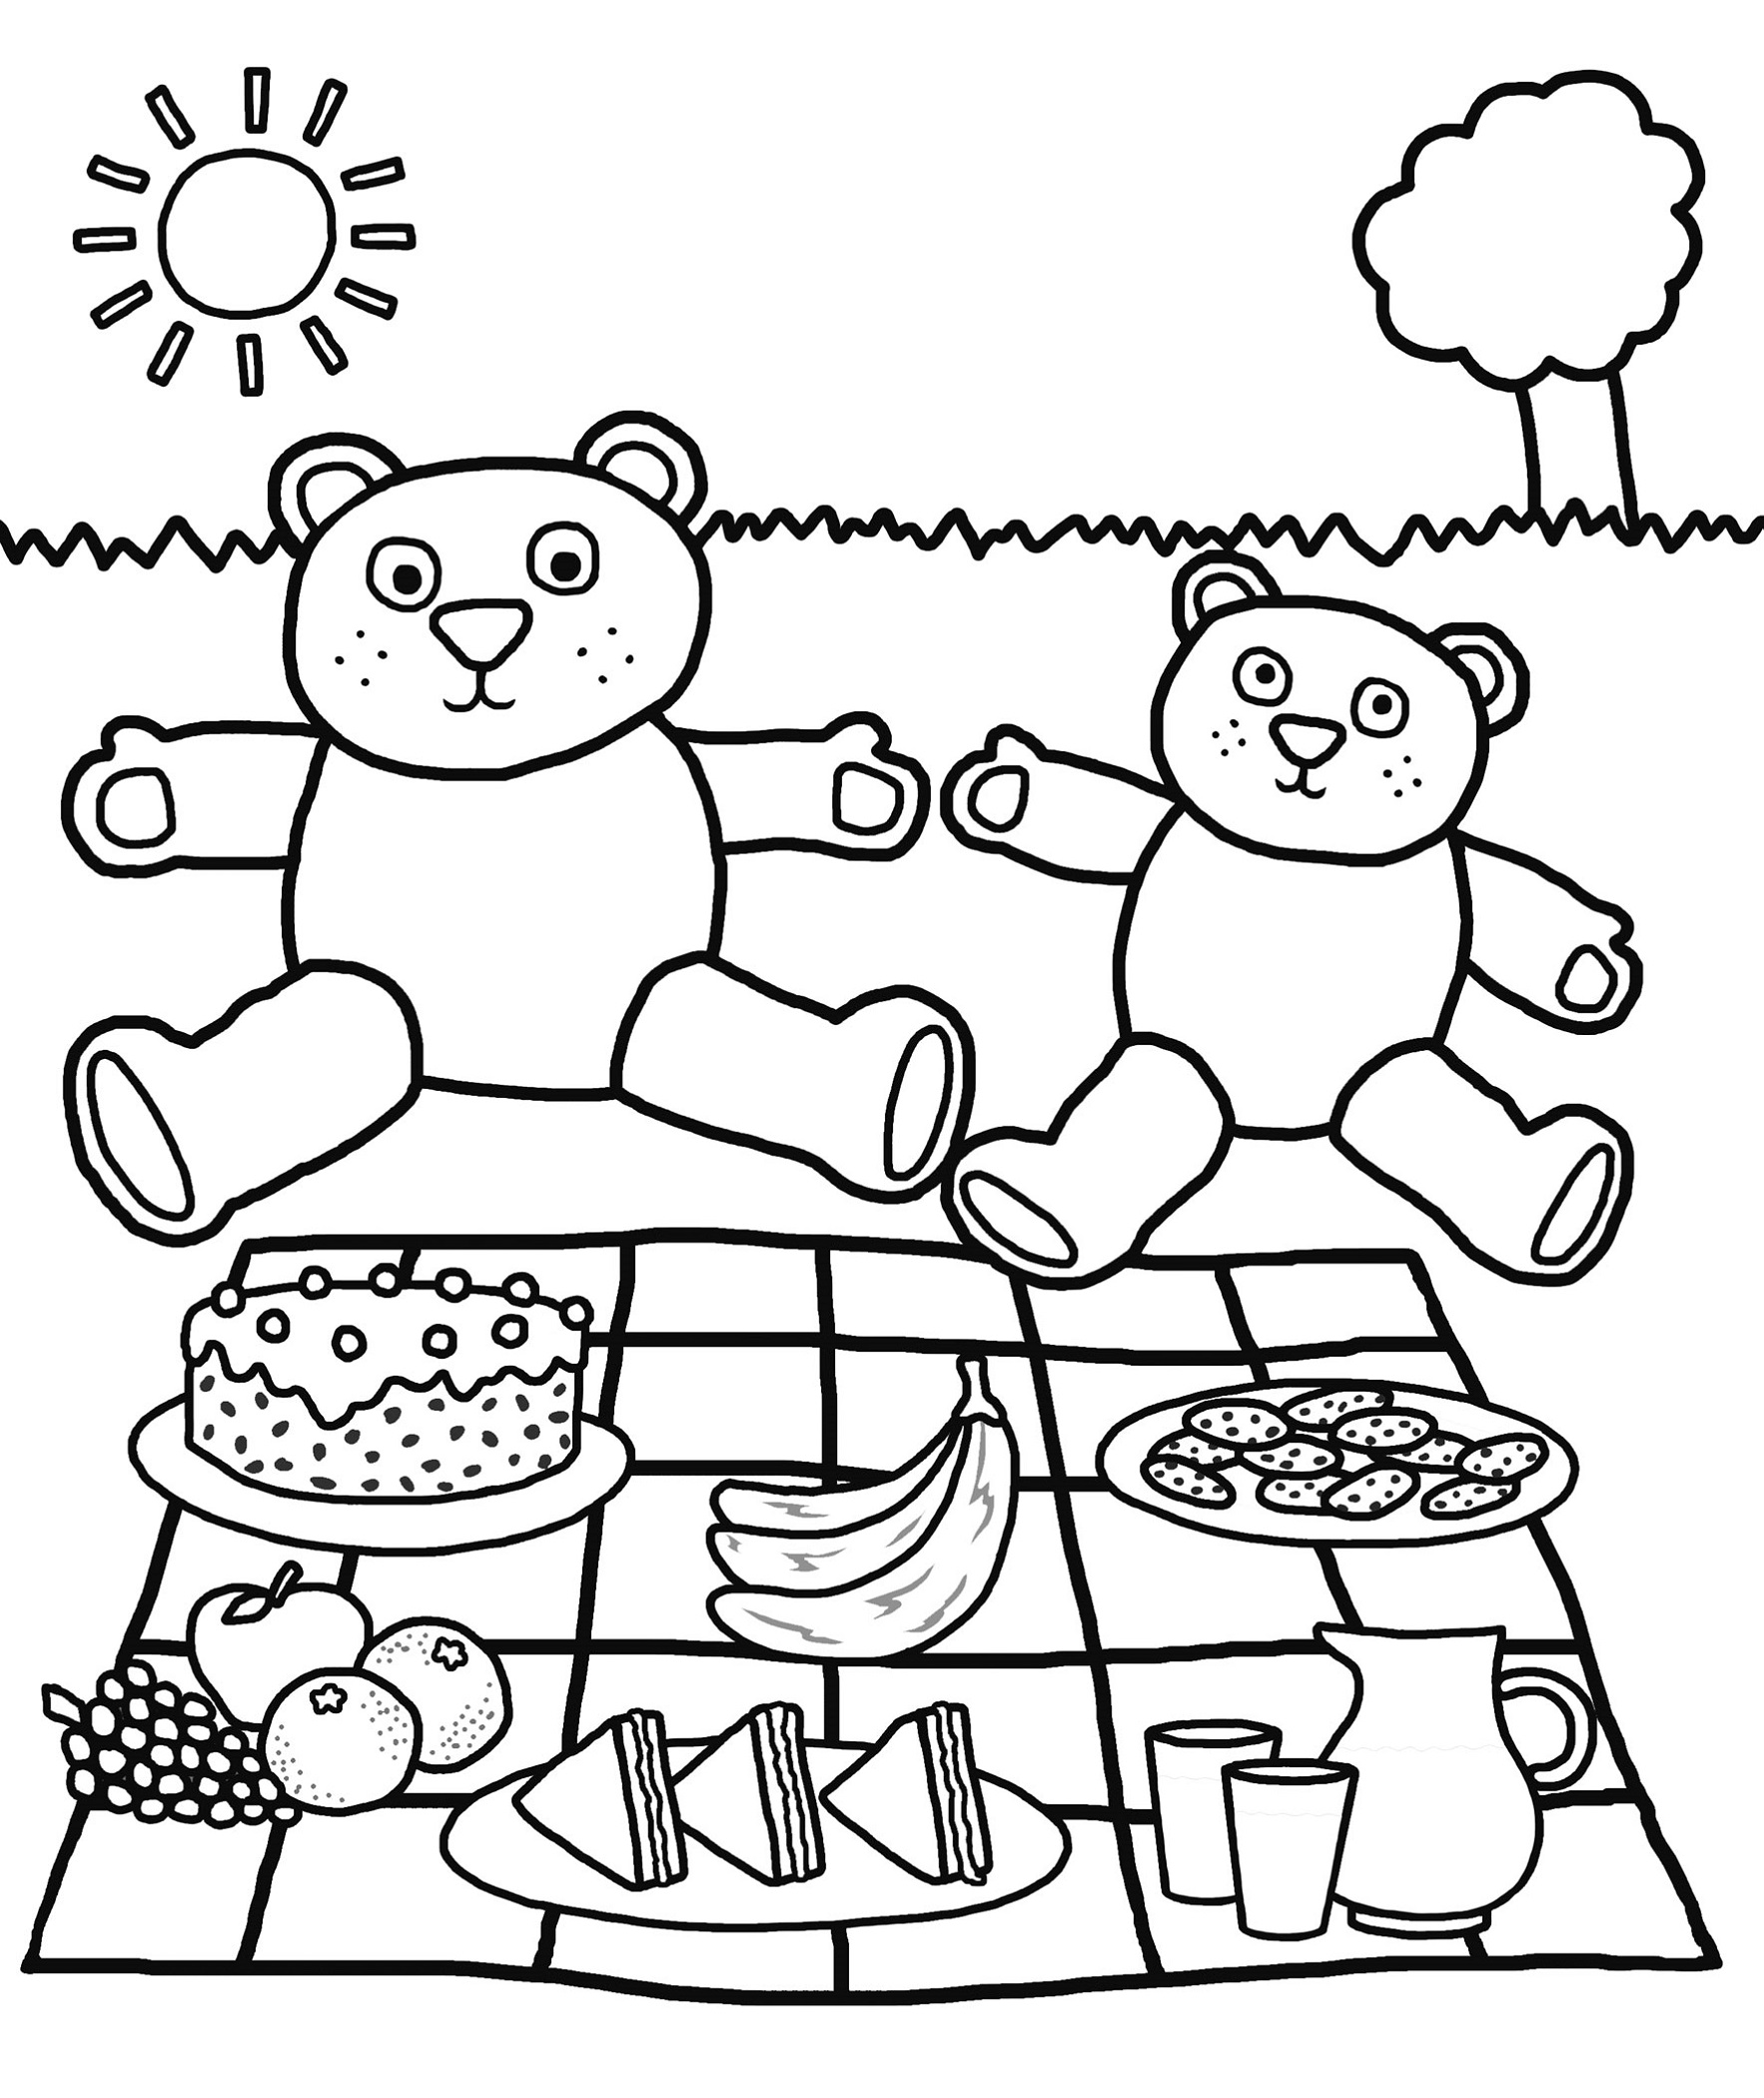 Free Printable Coloring Sheets for Kindergarten